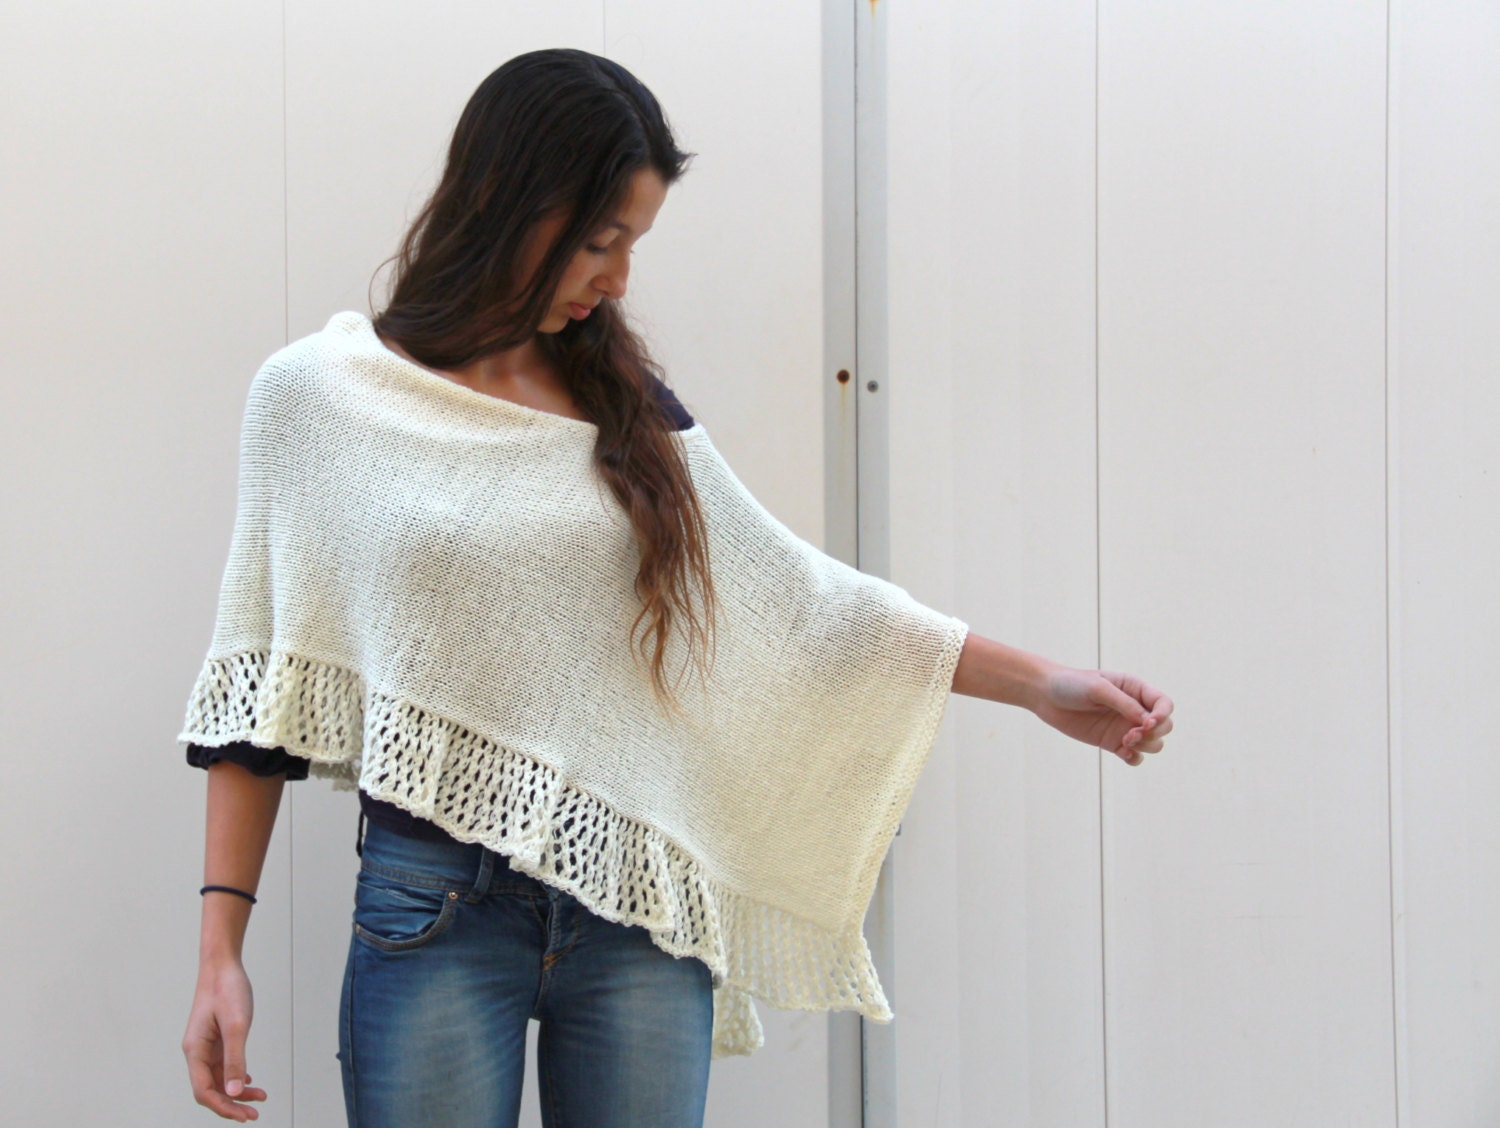 Knitting Pattern Poncho Wrap : Off White Cream Poncho Knit Lace Shawl Hand Knit Wrap knitted